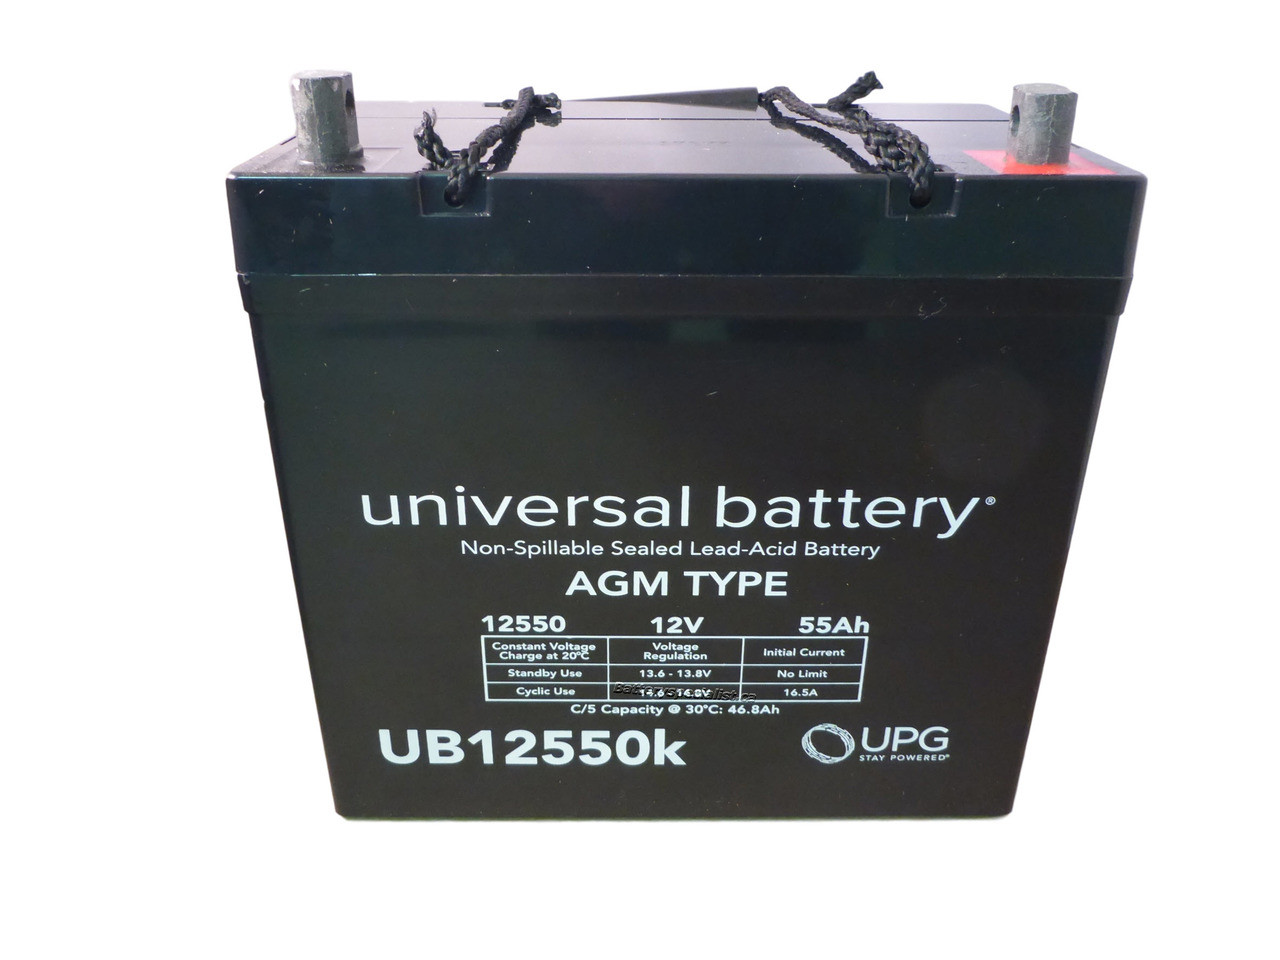 1a9692e78c ... 12V 55Ah AGM Battery Replacement for Kinetik HC1200 - 2 Pack Top View|  batteryspecialist.